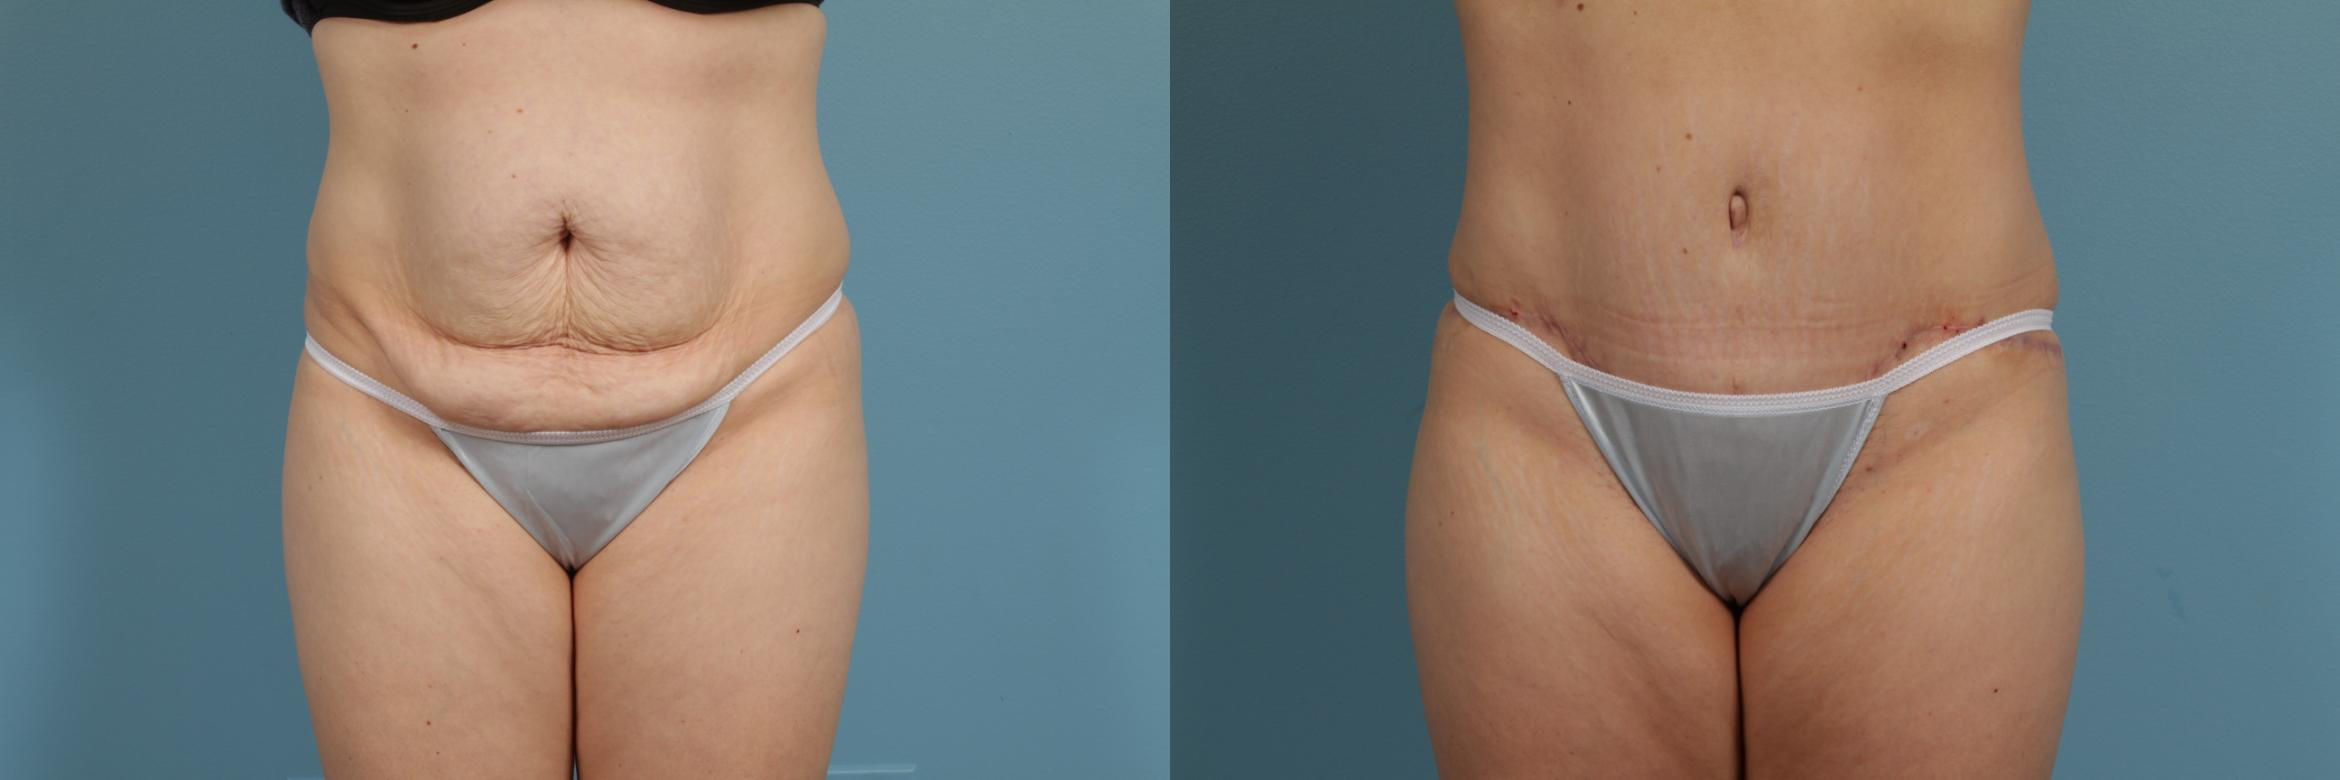 Tummy Tuck Case 299 Before & After View #1 | Chicago, IL | TLKM Plastic Surgery